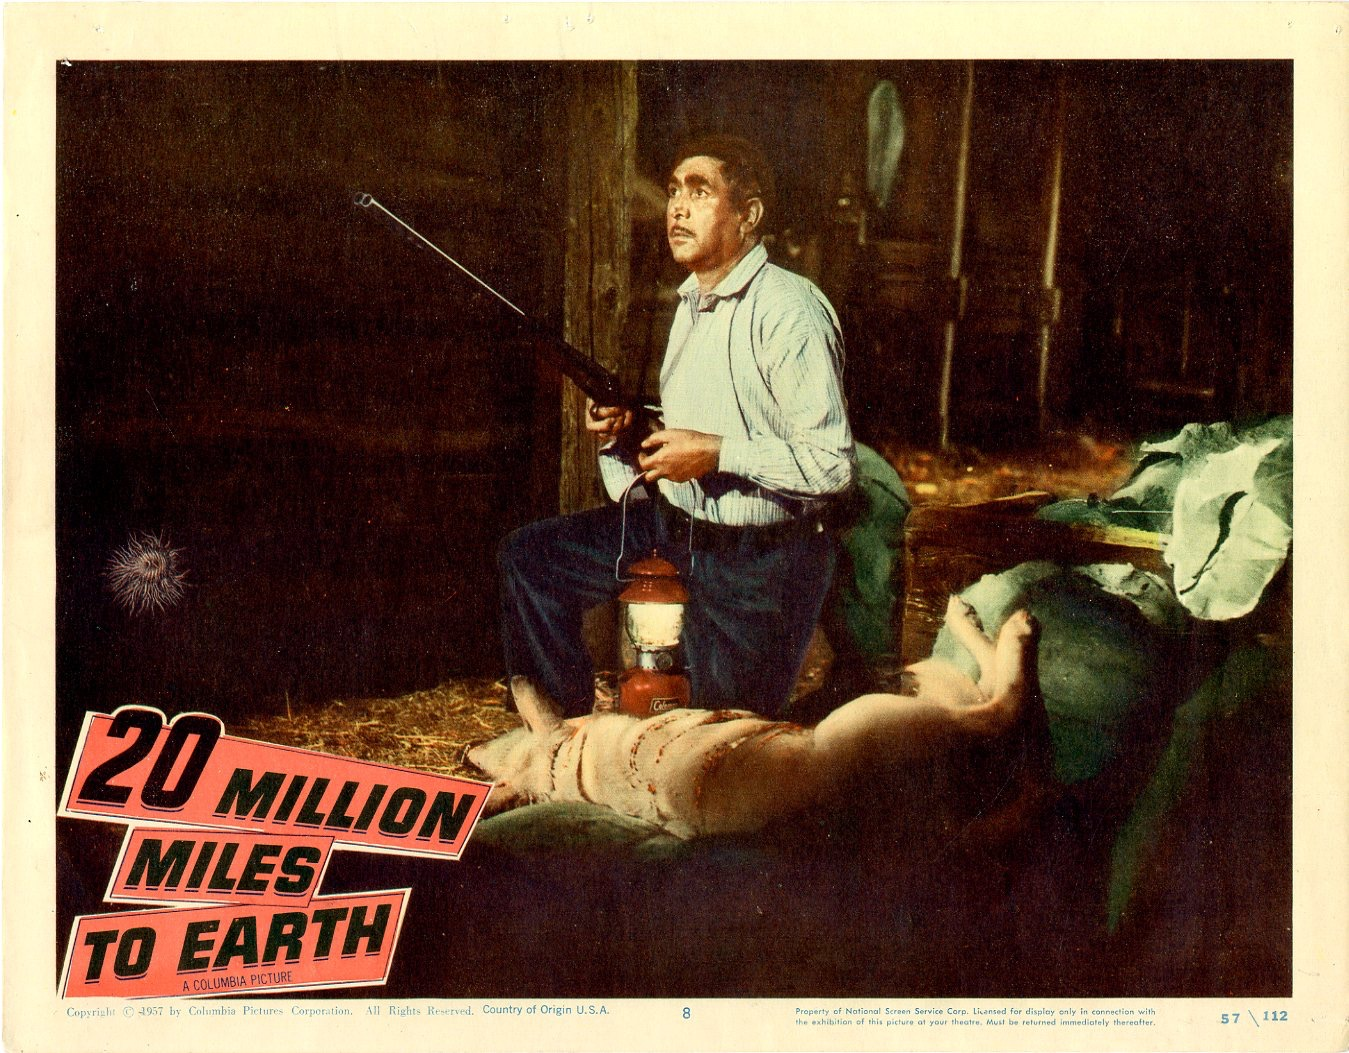 20 Million Miles To Earth 1957 - 400